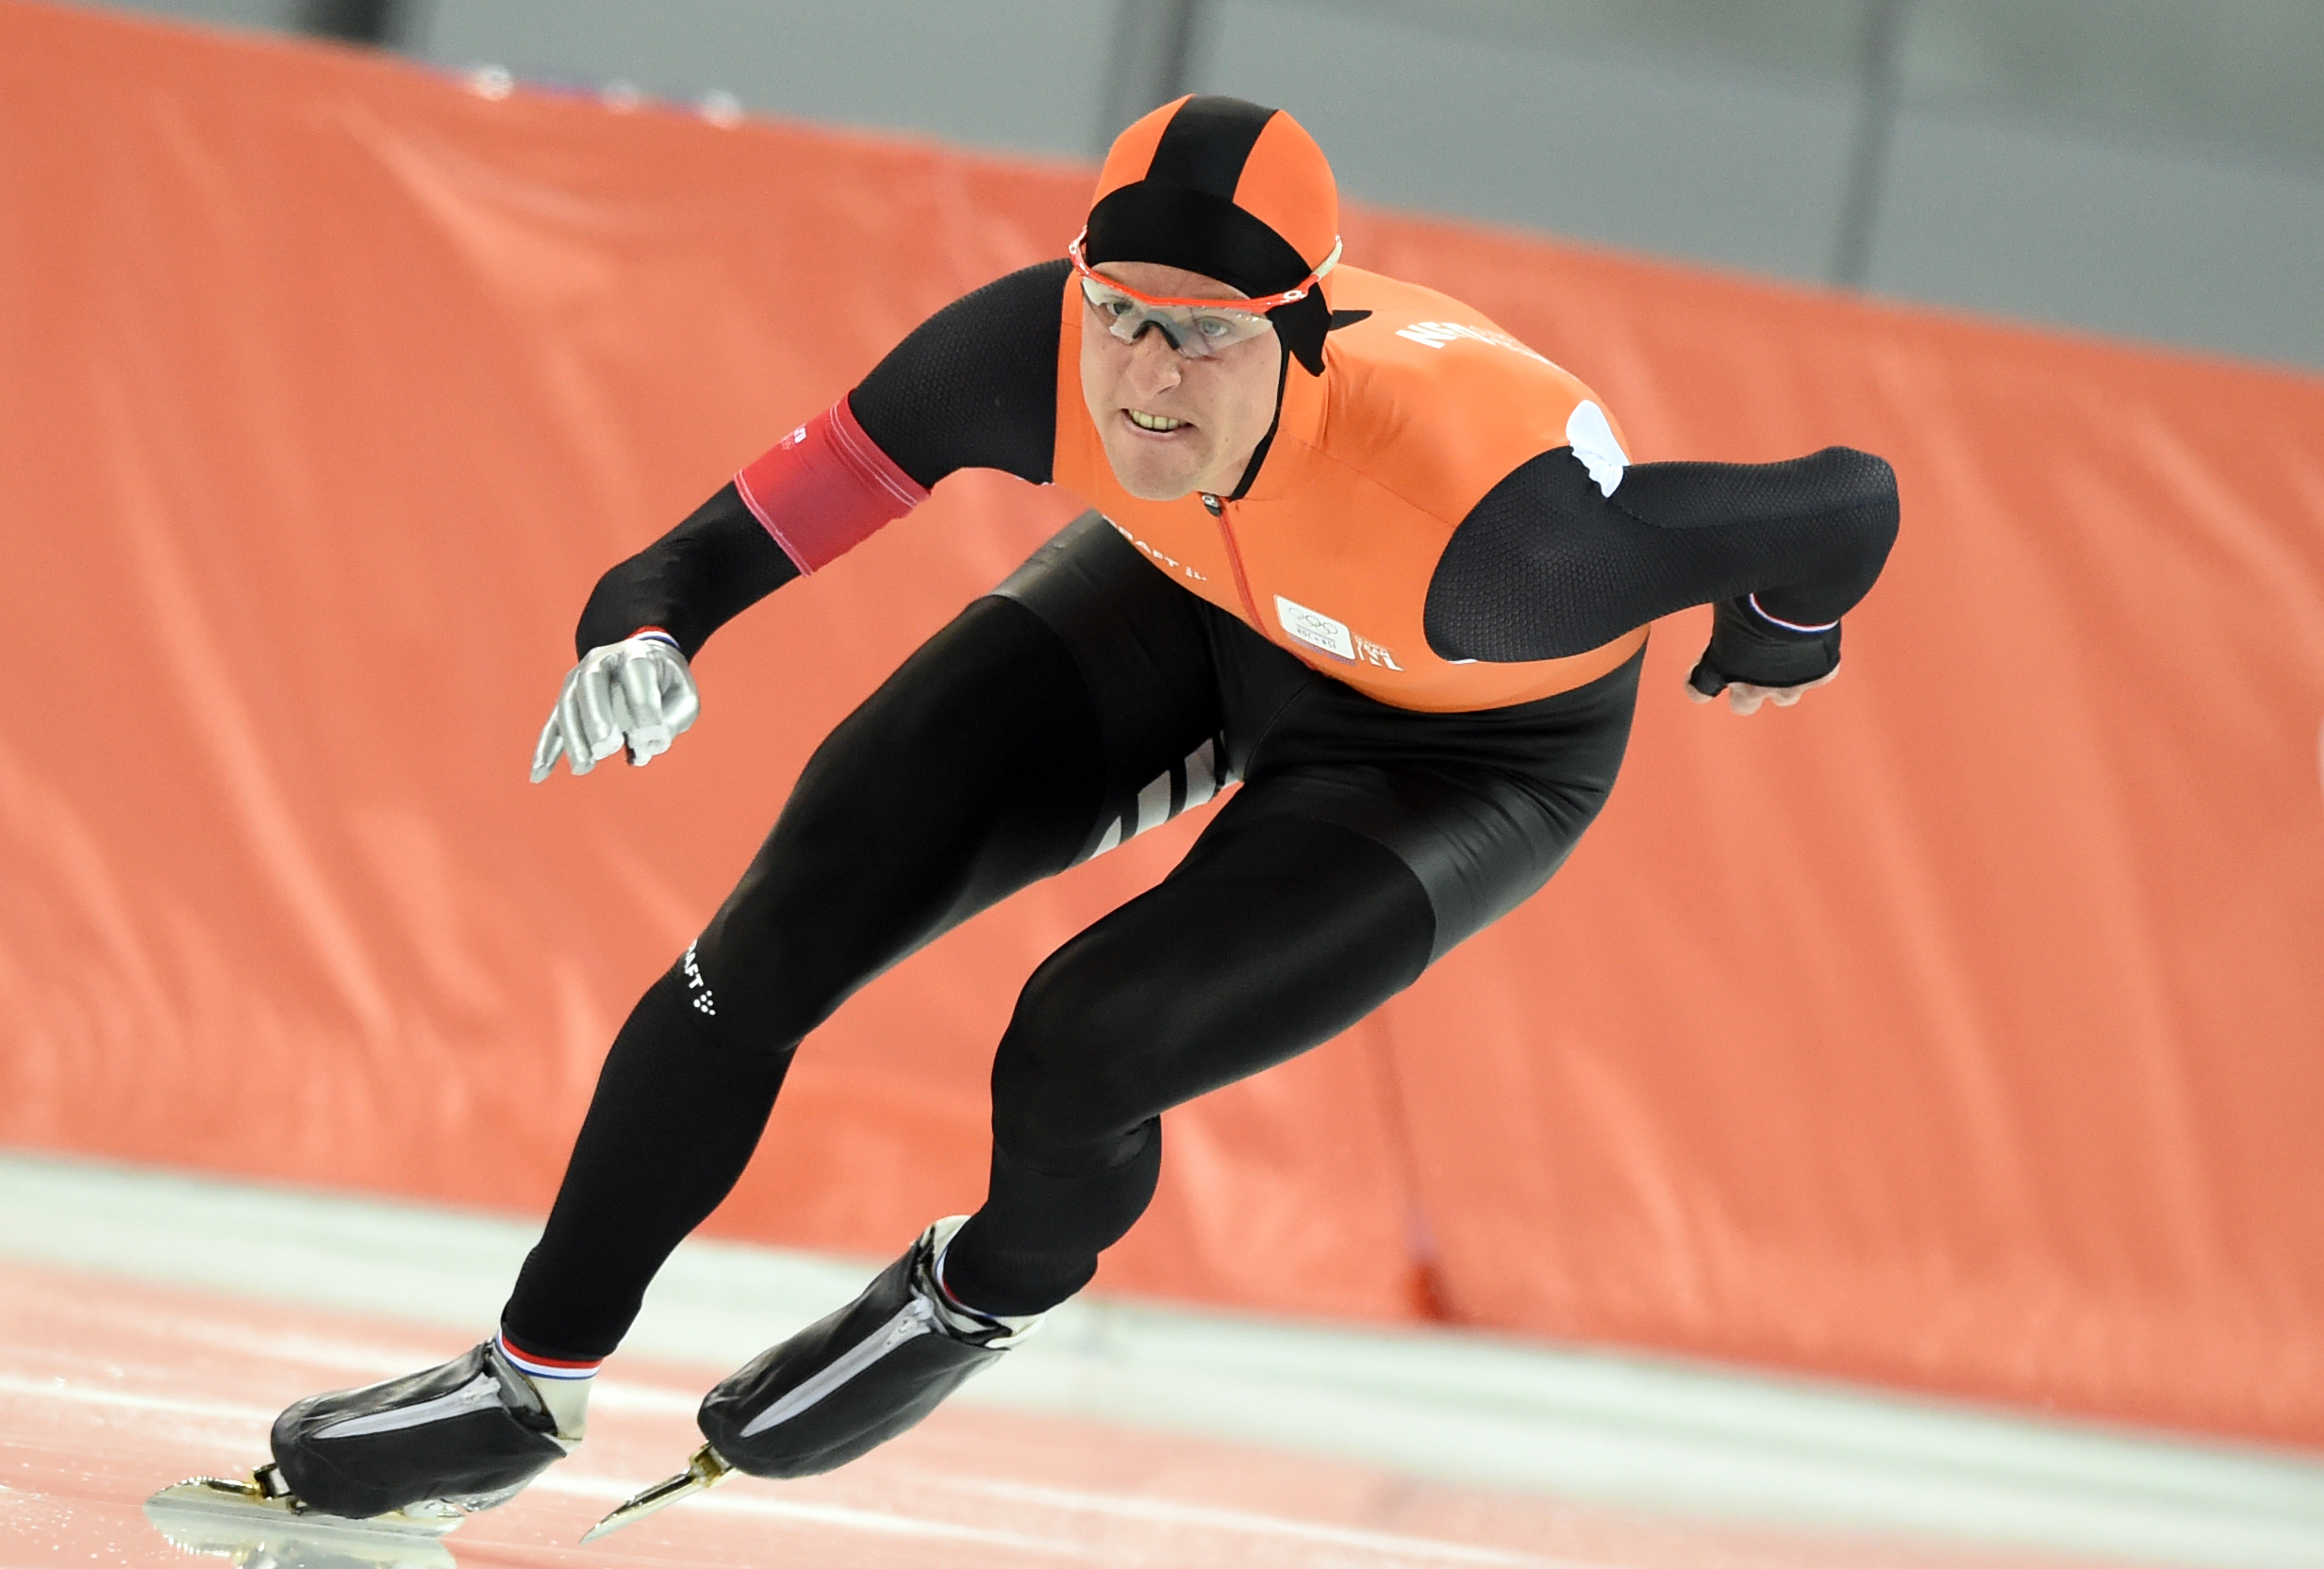 TOPSHOTSNetherlands' Ronald Mulder competes during the Men's Speed Skating 500 m at the Adler Arena during the Sochi Winter Olympics on February 10, 2014.          (AFP PHOTO / ANDREJ ISAKOVIC)